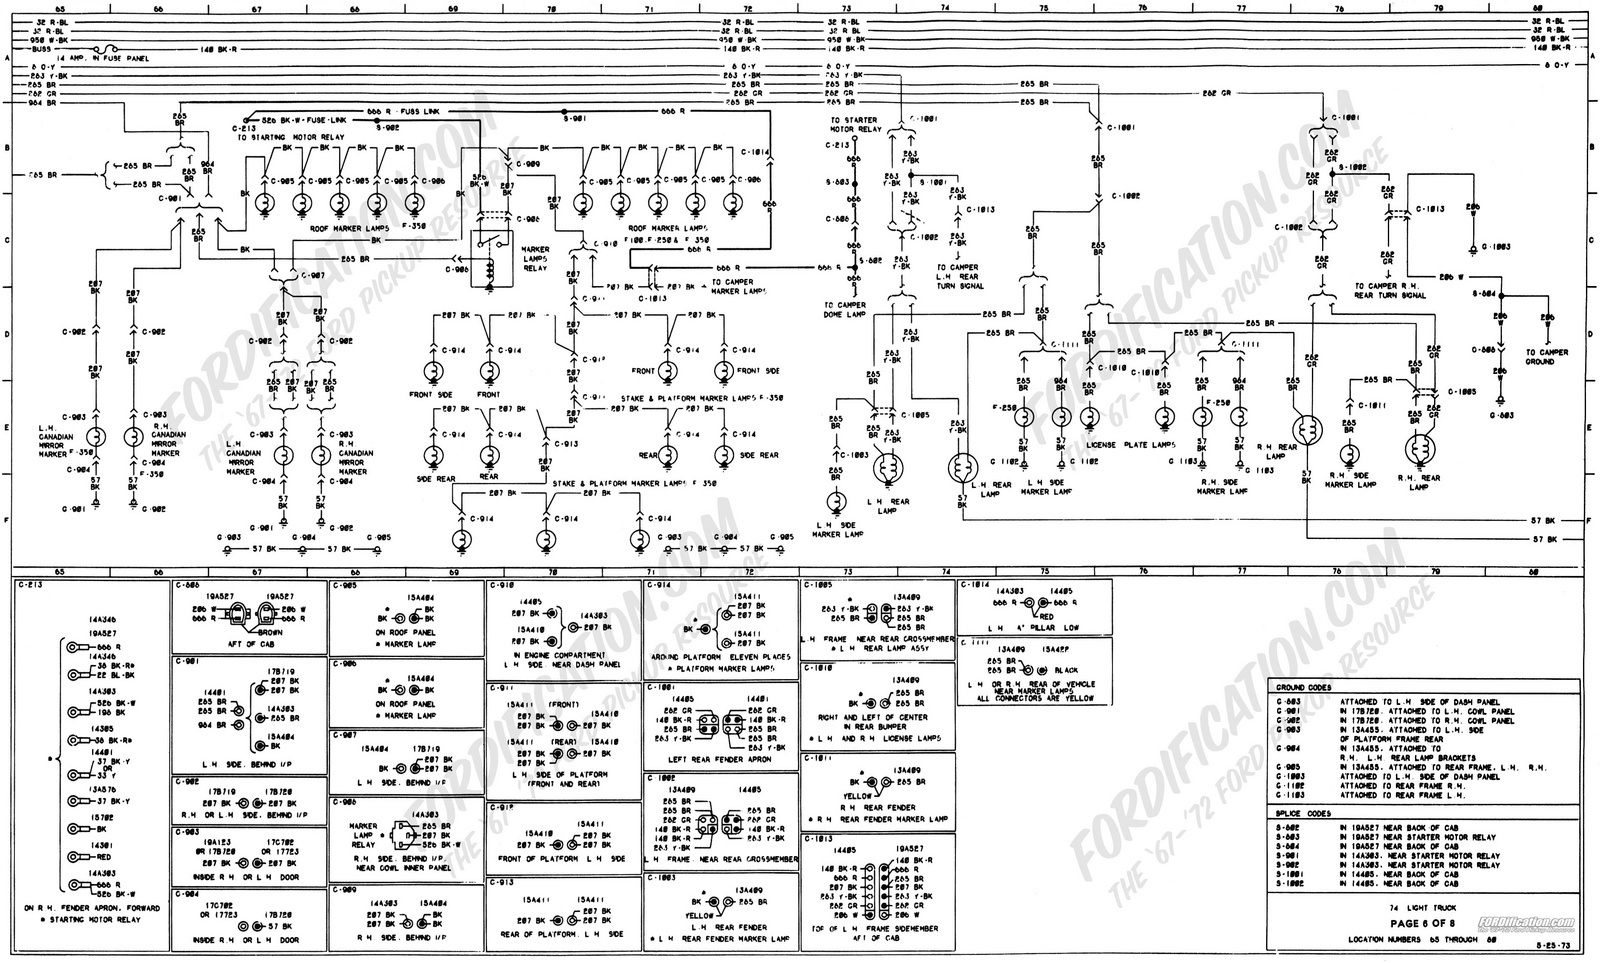 1978 ford f150 lariat wiring diagram 2 13 wohnungzumieten de \u2022ford f 150 questions are the taillights wired to the highbeam rh cargurus com 1978 ford bronco wiring diagram 1973 ford alternator wiring diagram